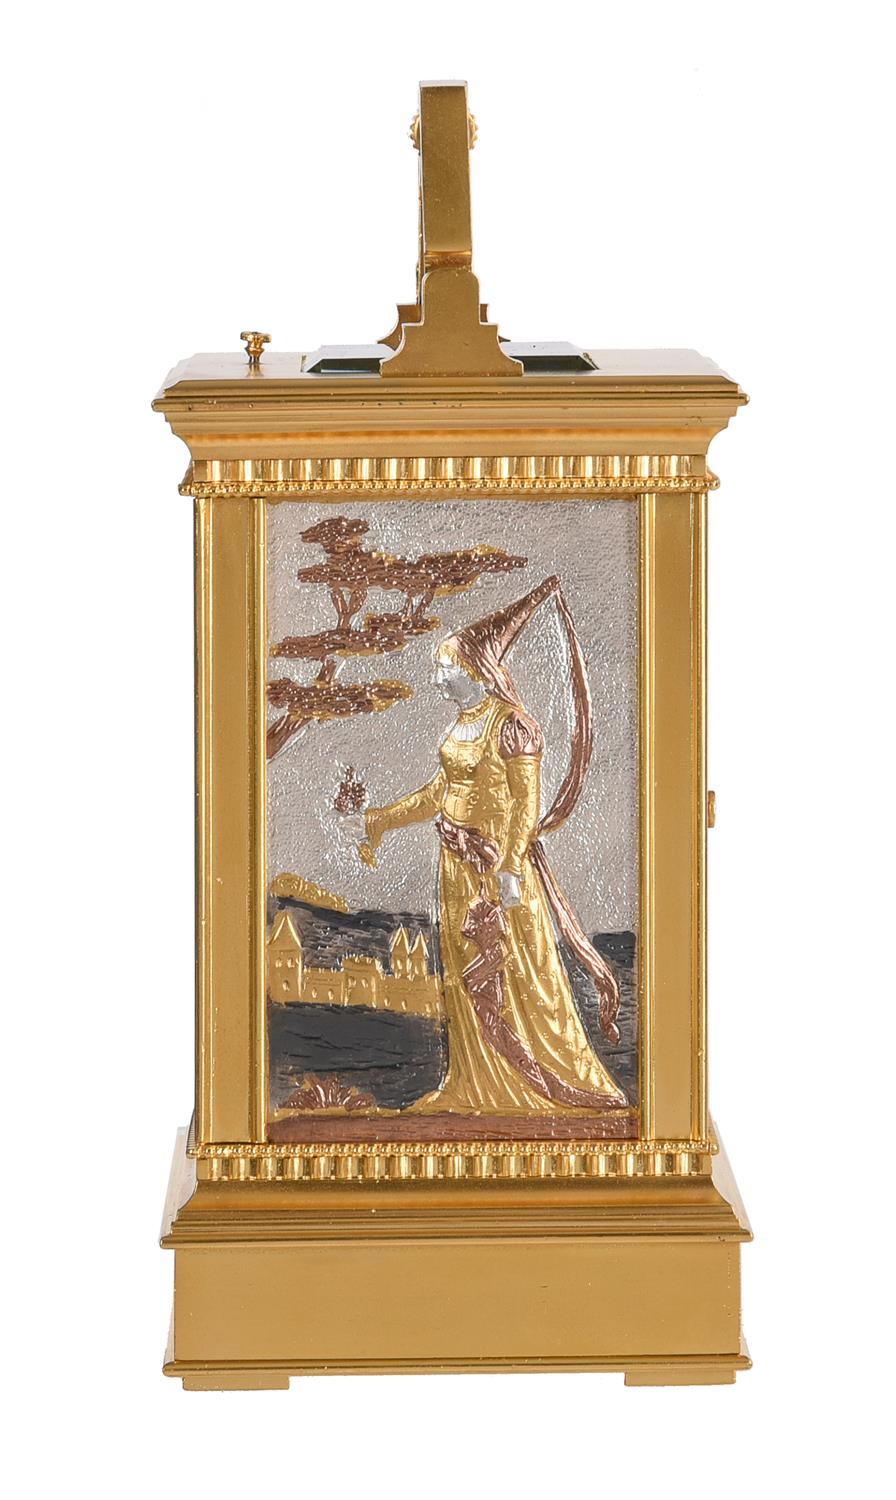 A fine French gilt brass carriage clock with multi-colour relief cast panels and push-button repeat - Image 5 of 7